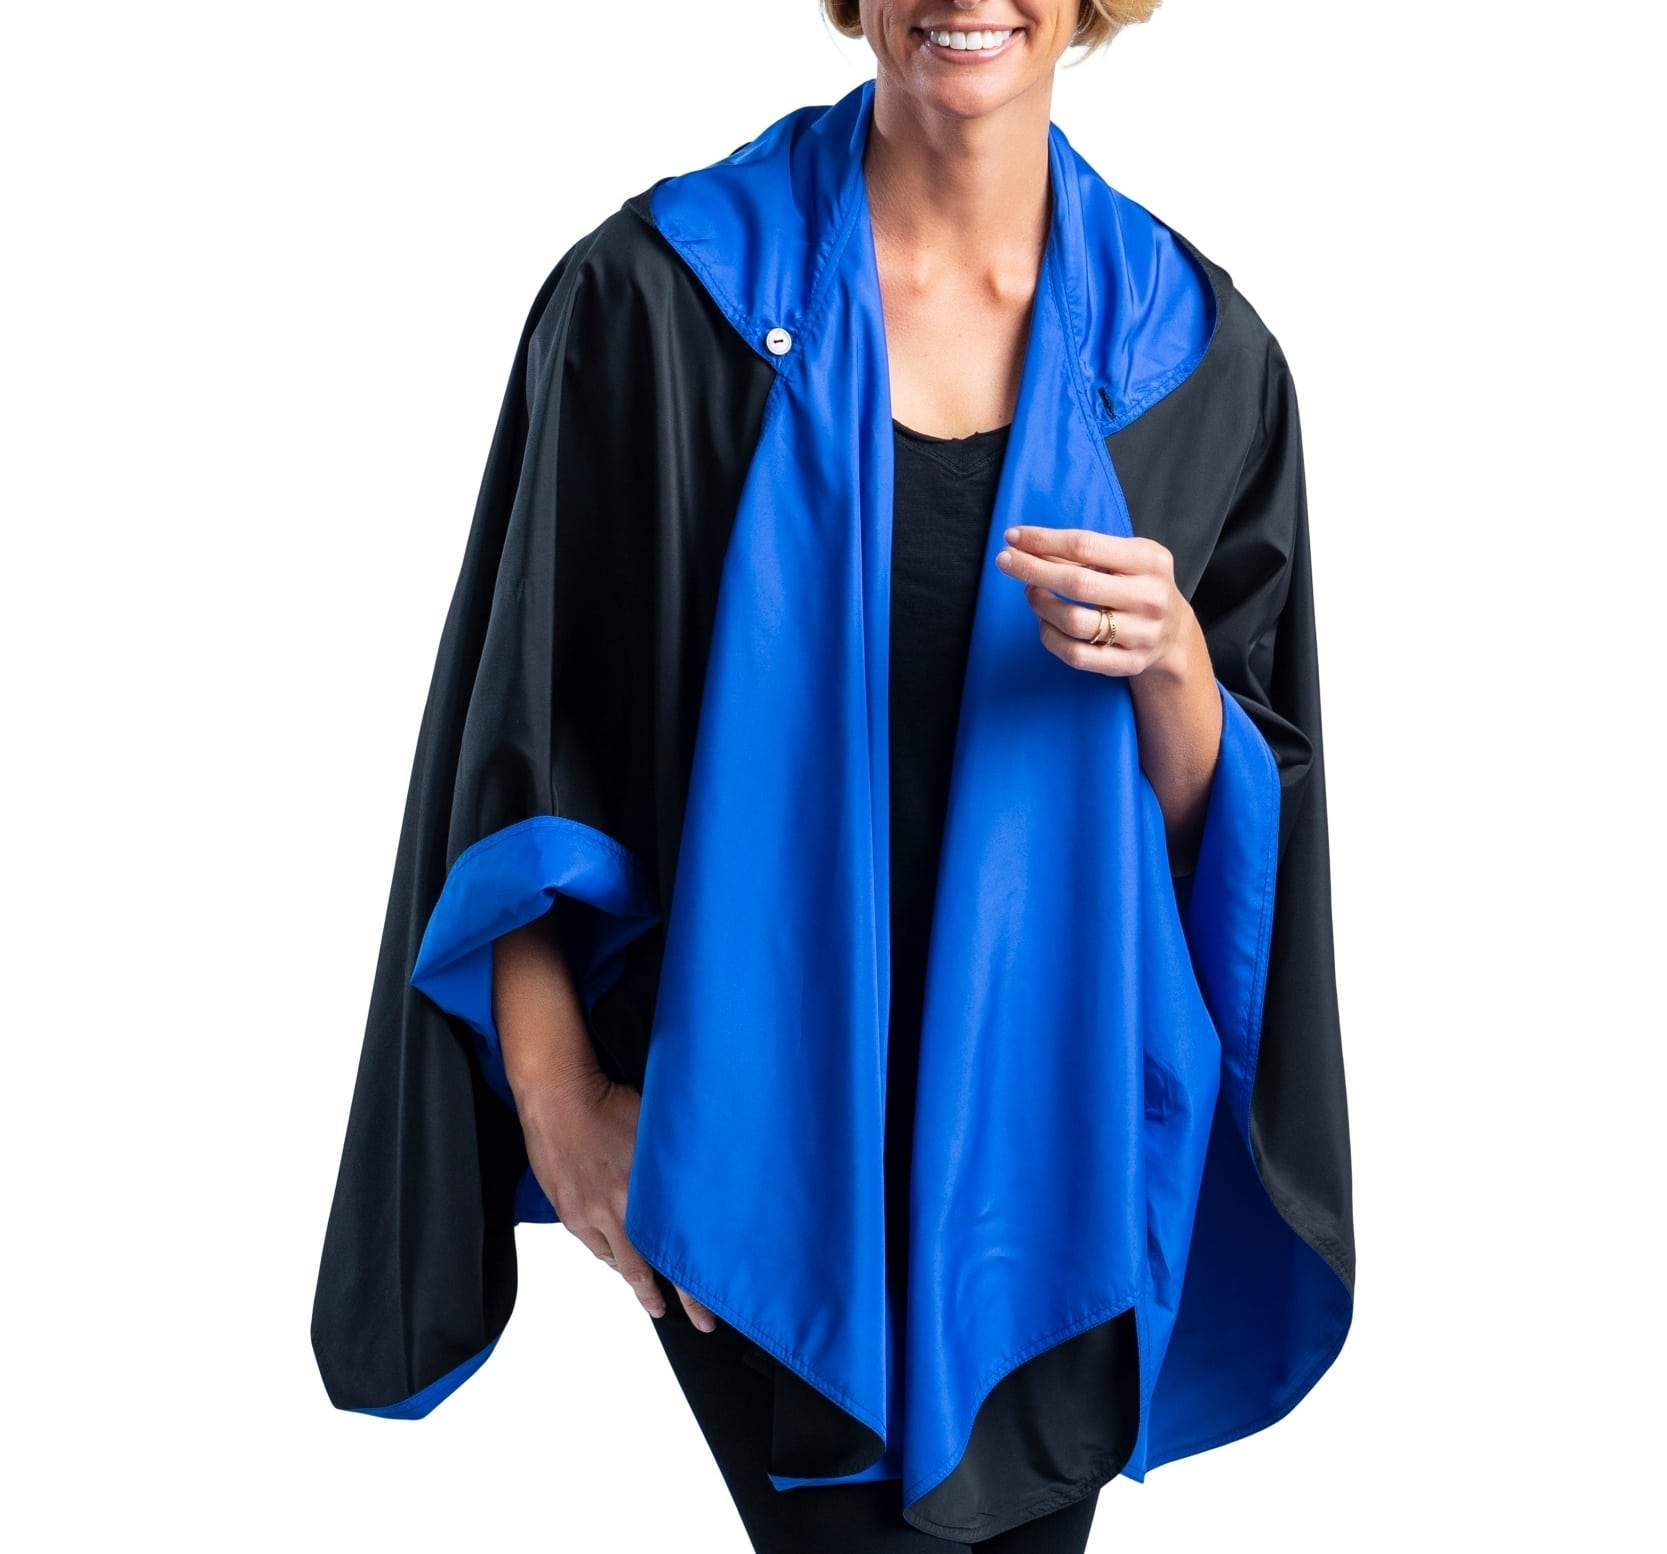 Women wearing a Black/Royal Blue RainCaper travel cape with the Black side out, revealing the Royal Blue print at the lapels and cuffs